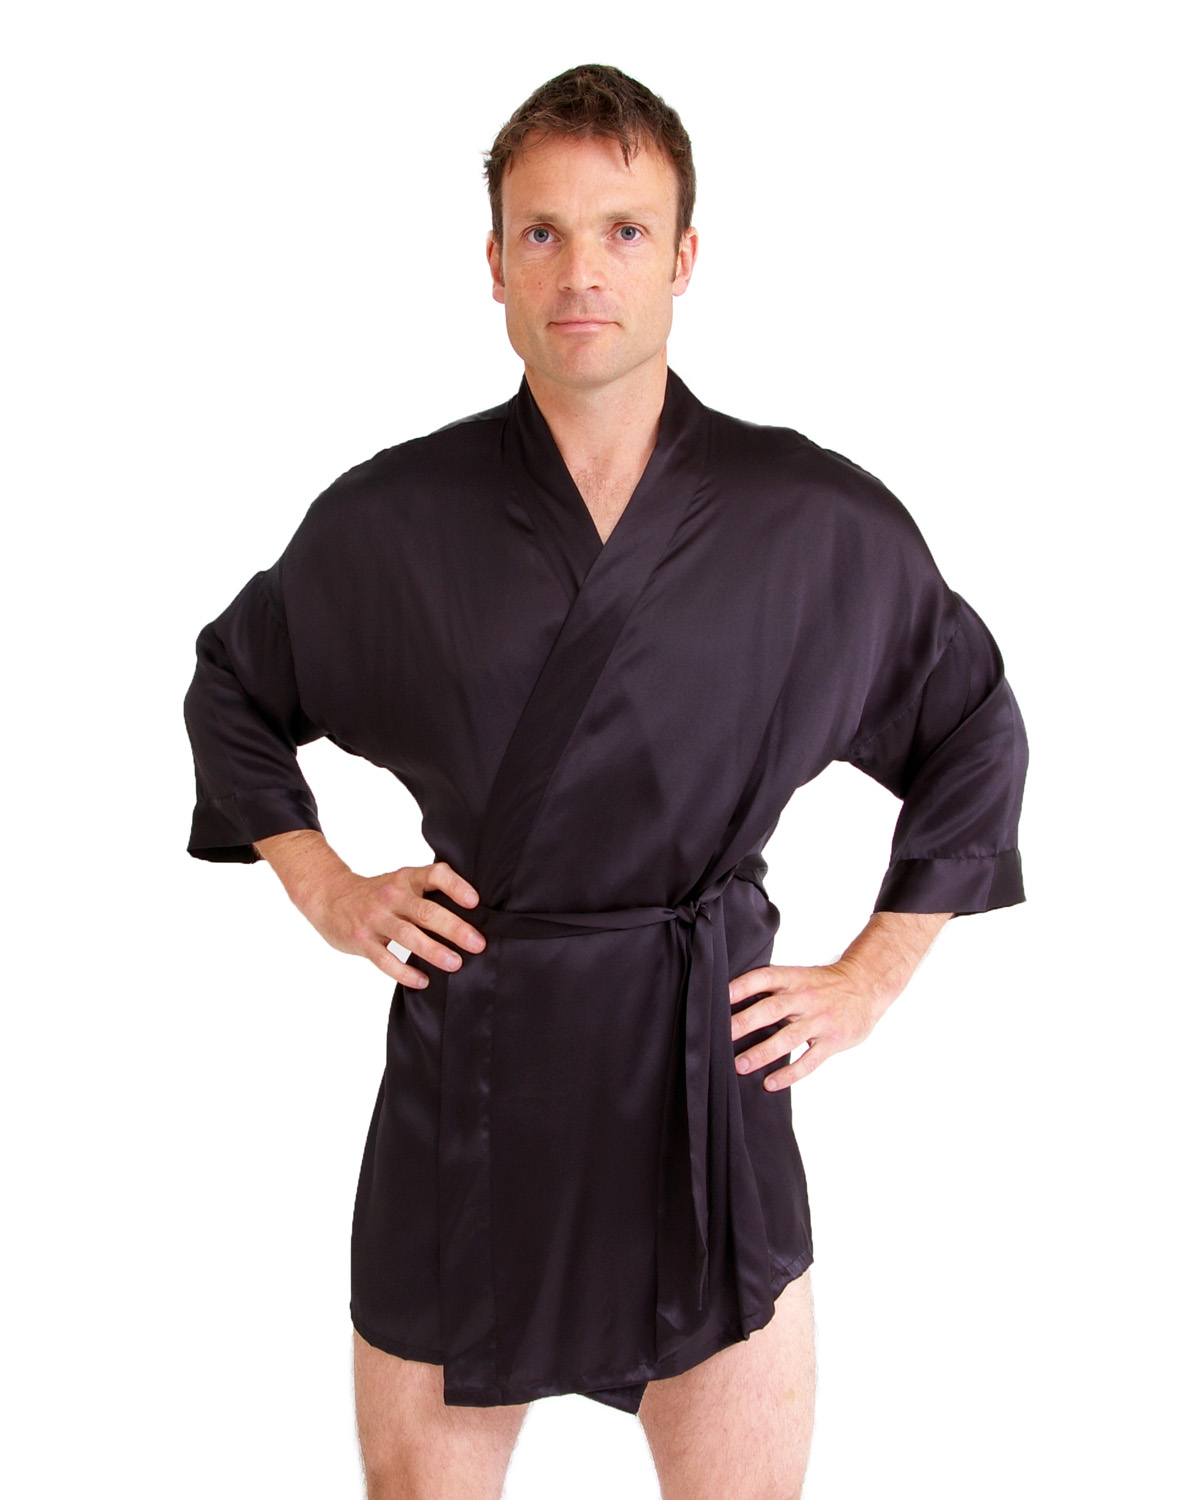 Dressing gowns are loose outer garments which can be used by men or women. You can wear it over other a piece of clothing or with nothing. A dressing gown is .